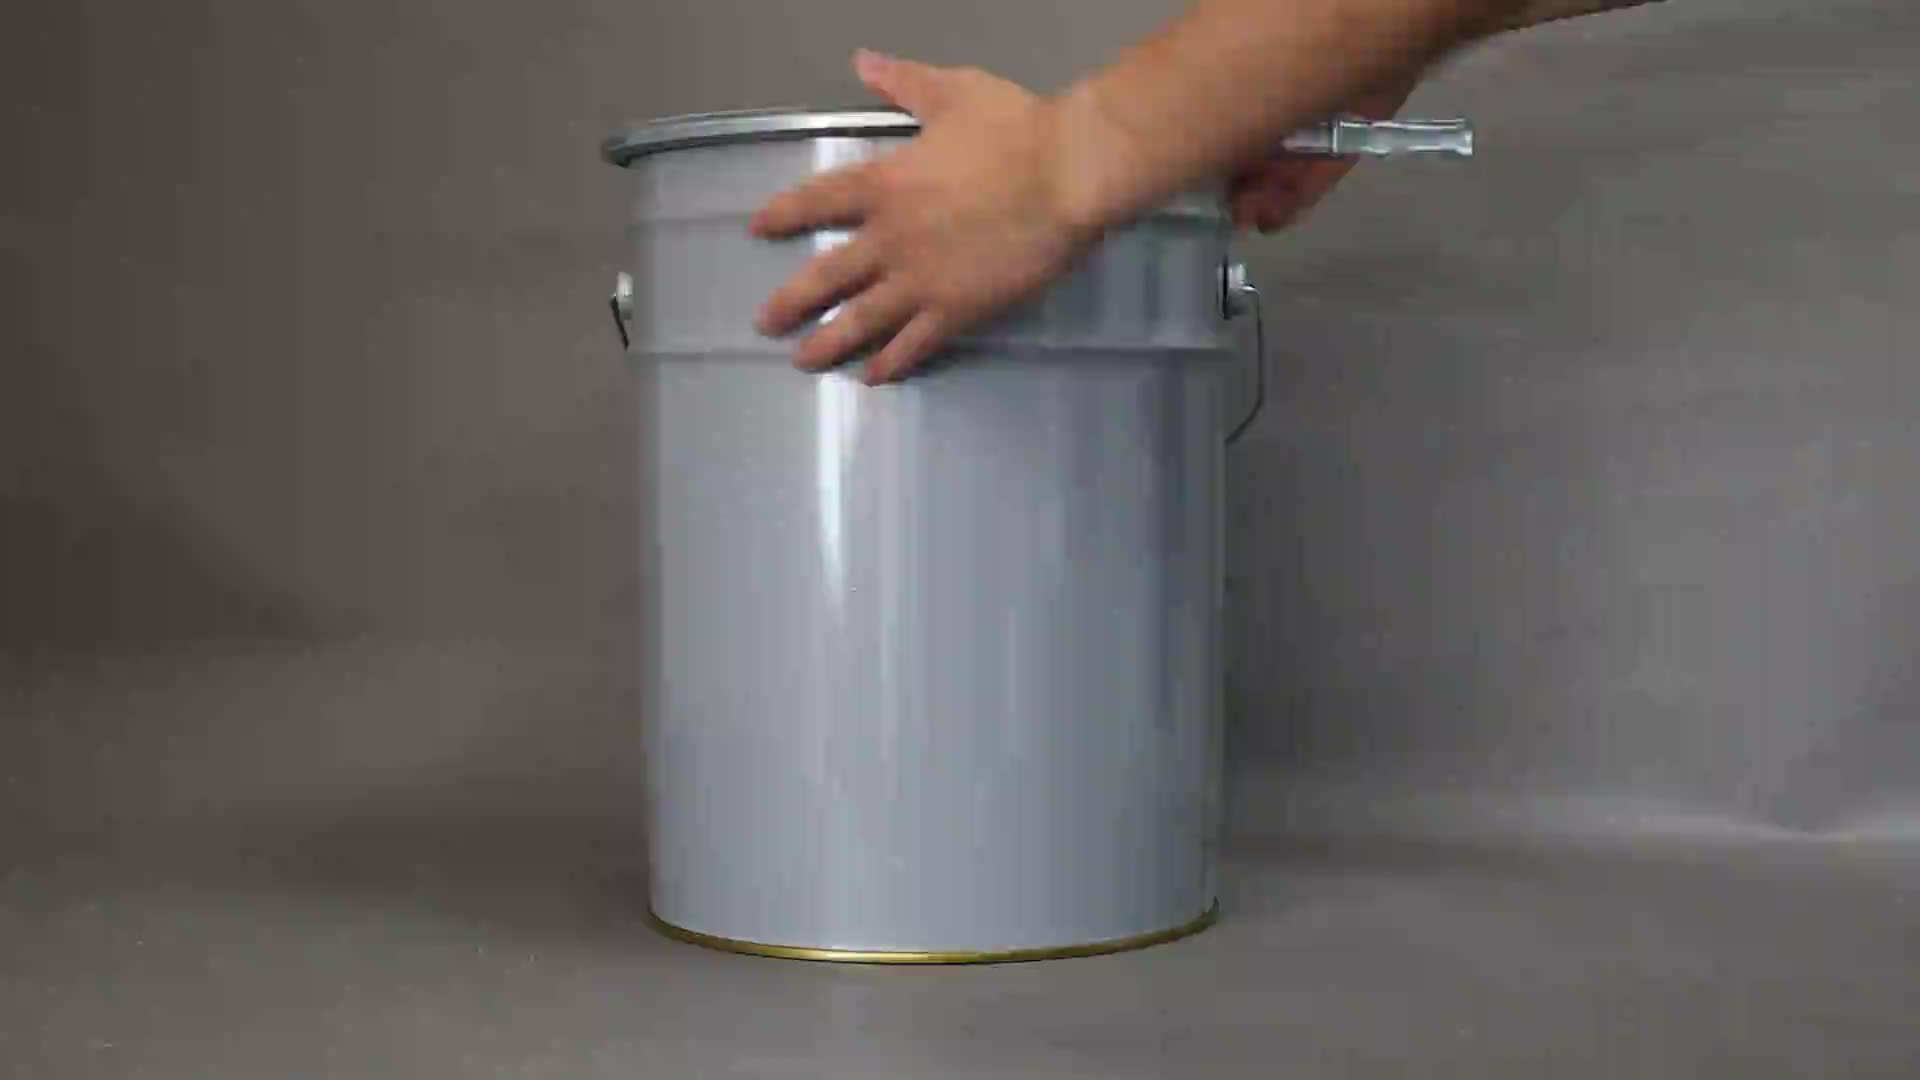 High quality 5L-35 liter empty tinplate metal bucket/pail with locking ring clamps for paint